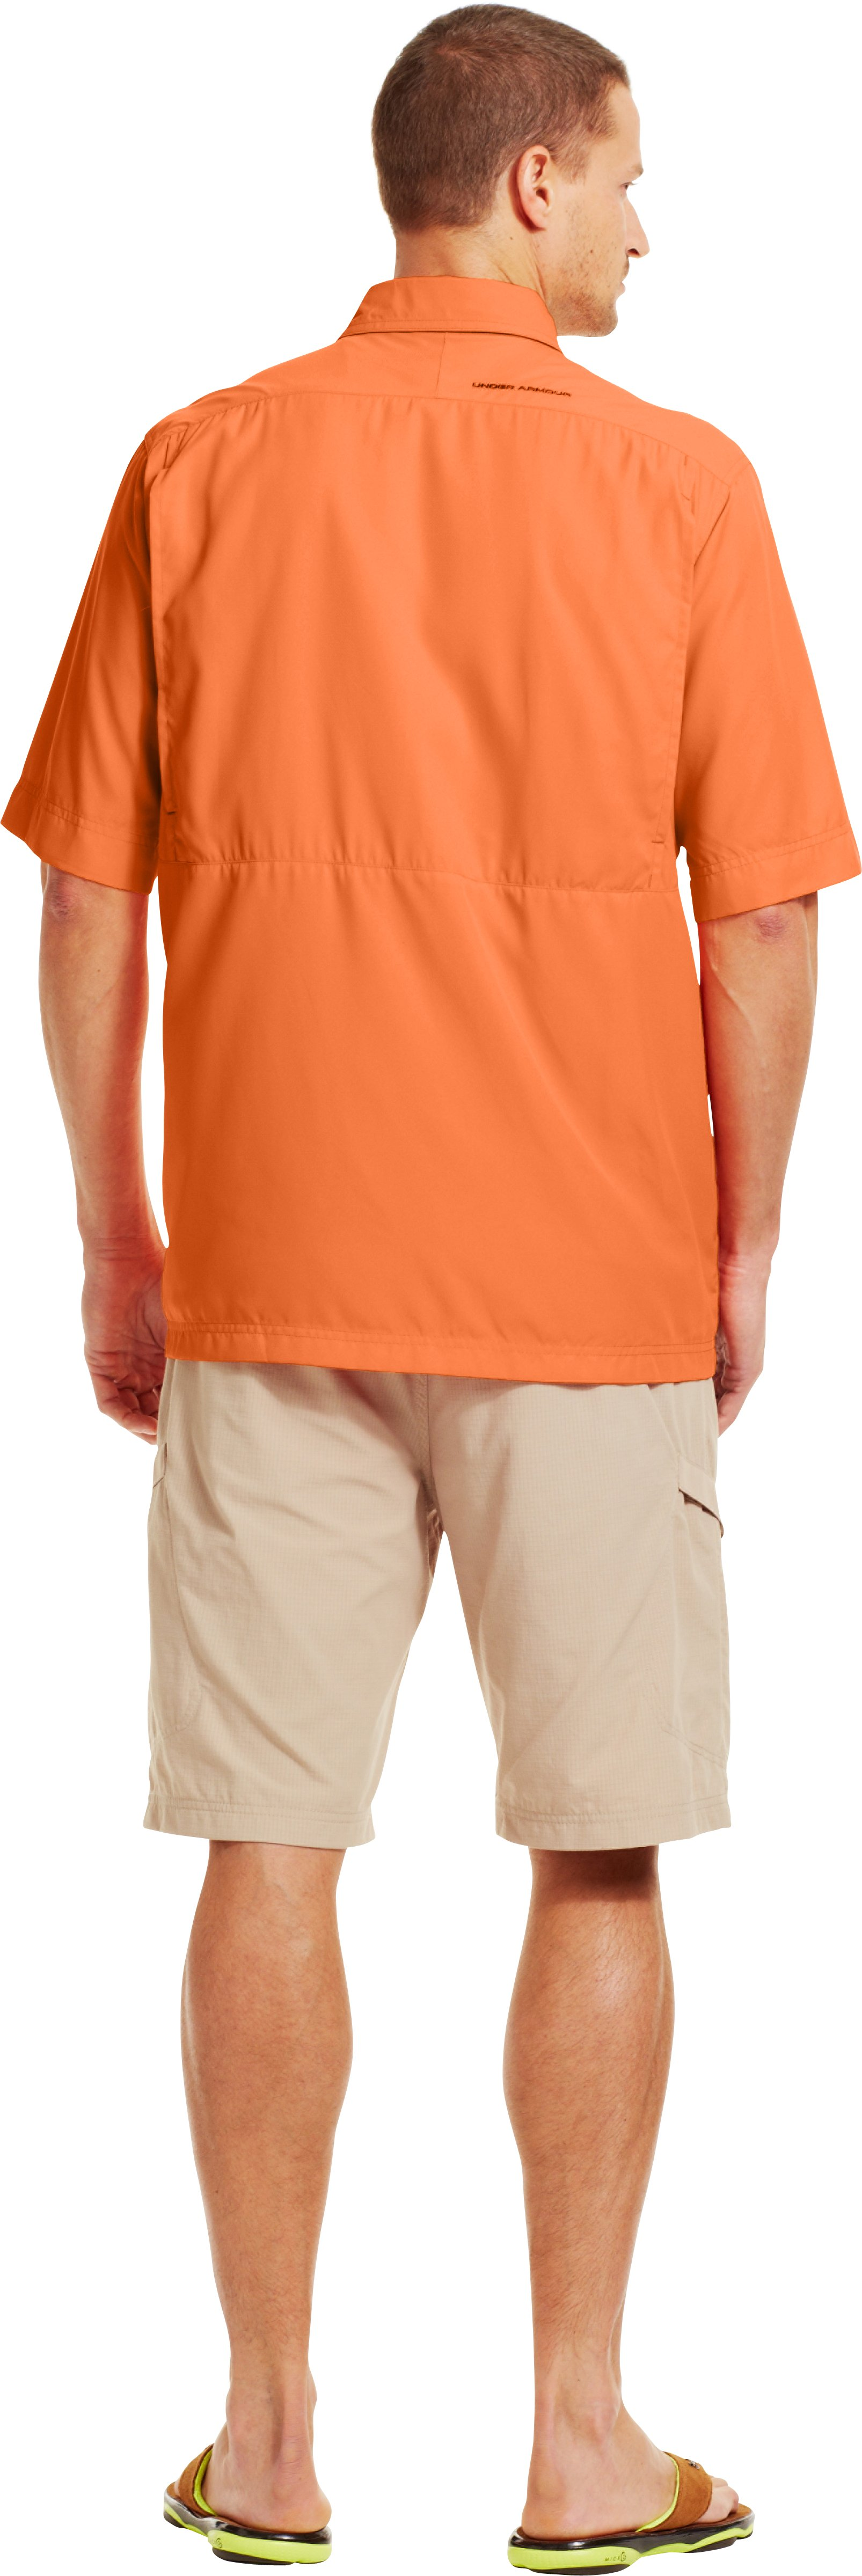 Men's Flats Guide Short Sleeve Shirt, Mandarin, Back